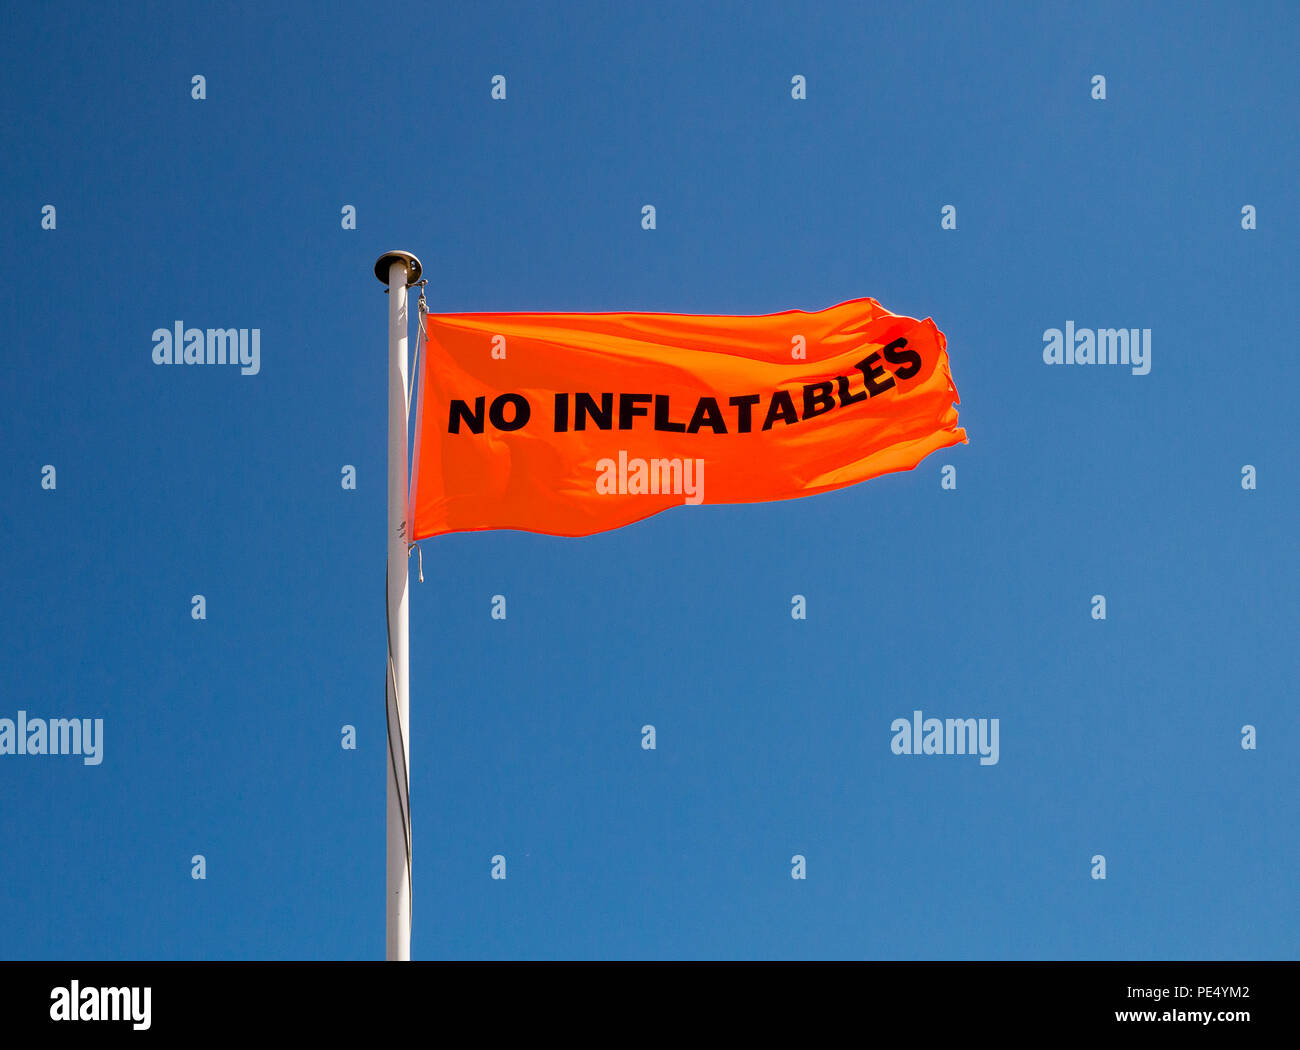 Colour image of an orange flag with NO INFLATABLES in black letters on a metal flagpole, shot from below against a clear blue sky - Stock Image